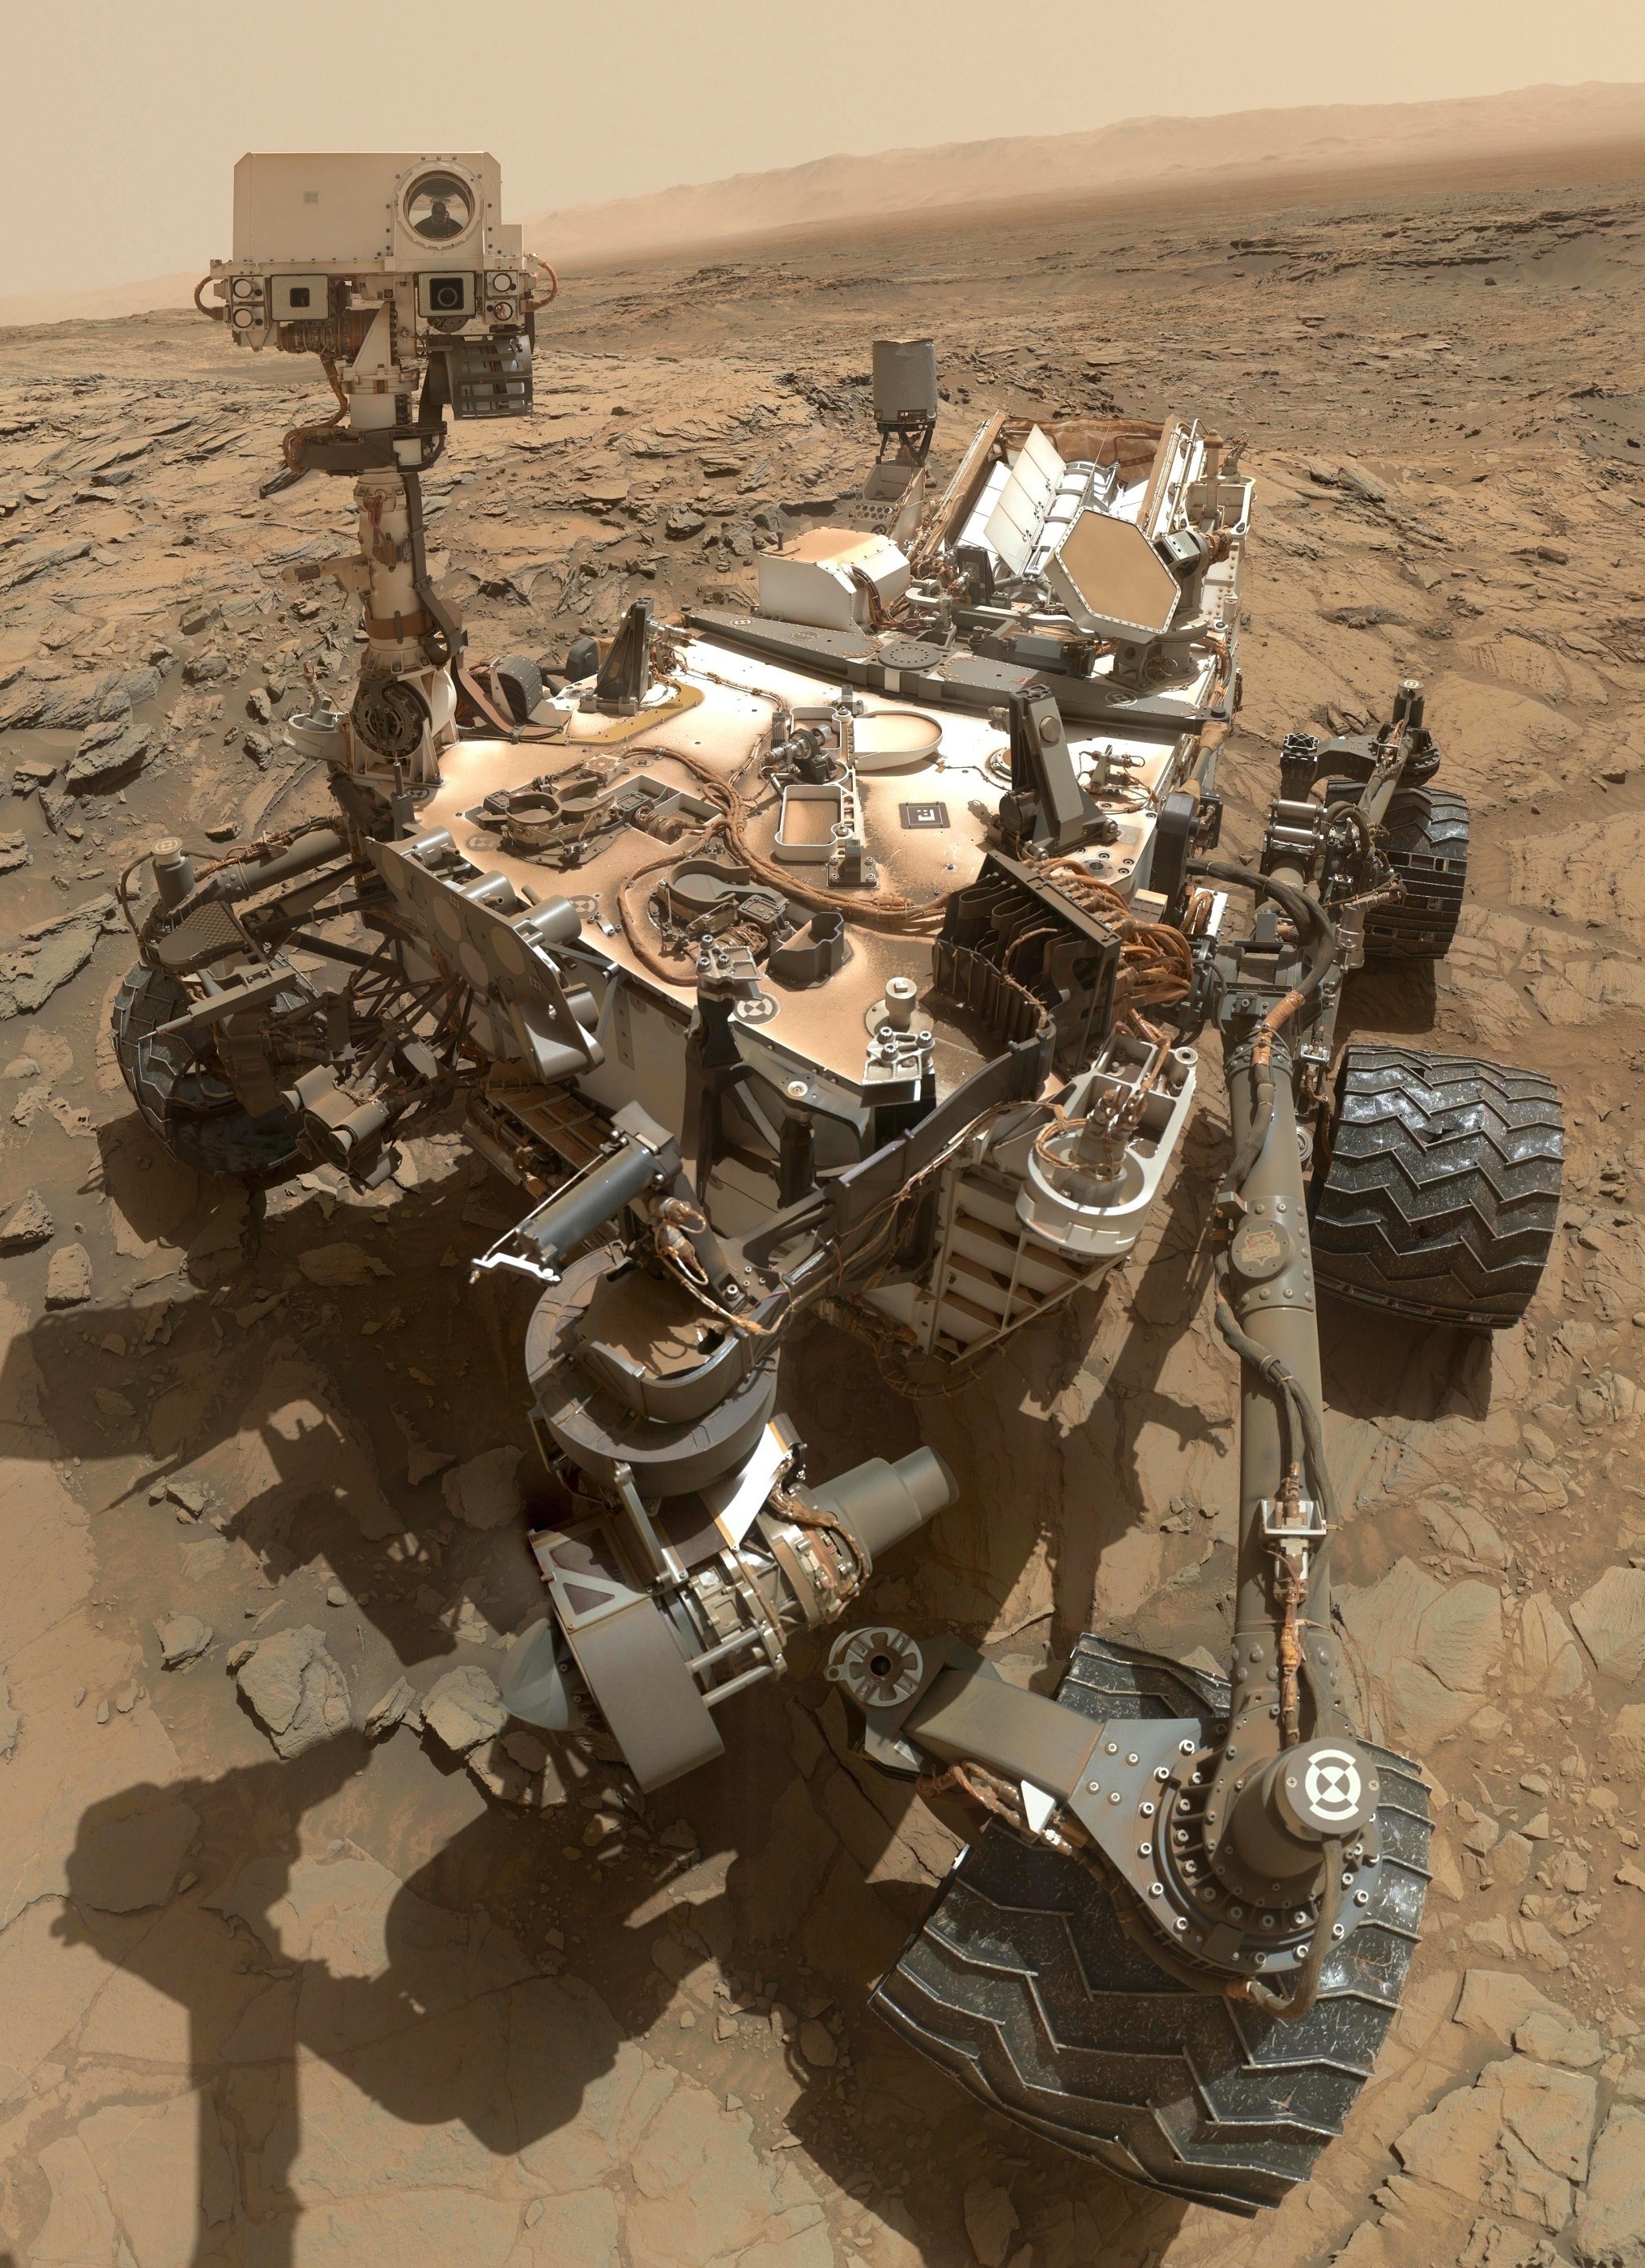 Res: 2031x2800, Curiosity, Cosmos, Vehicle, Mars Rover, high angle view, sea